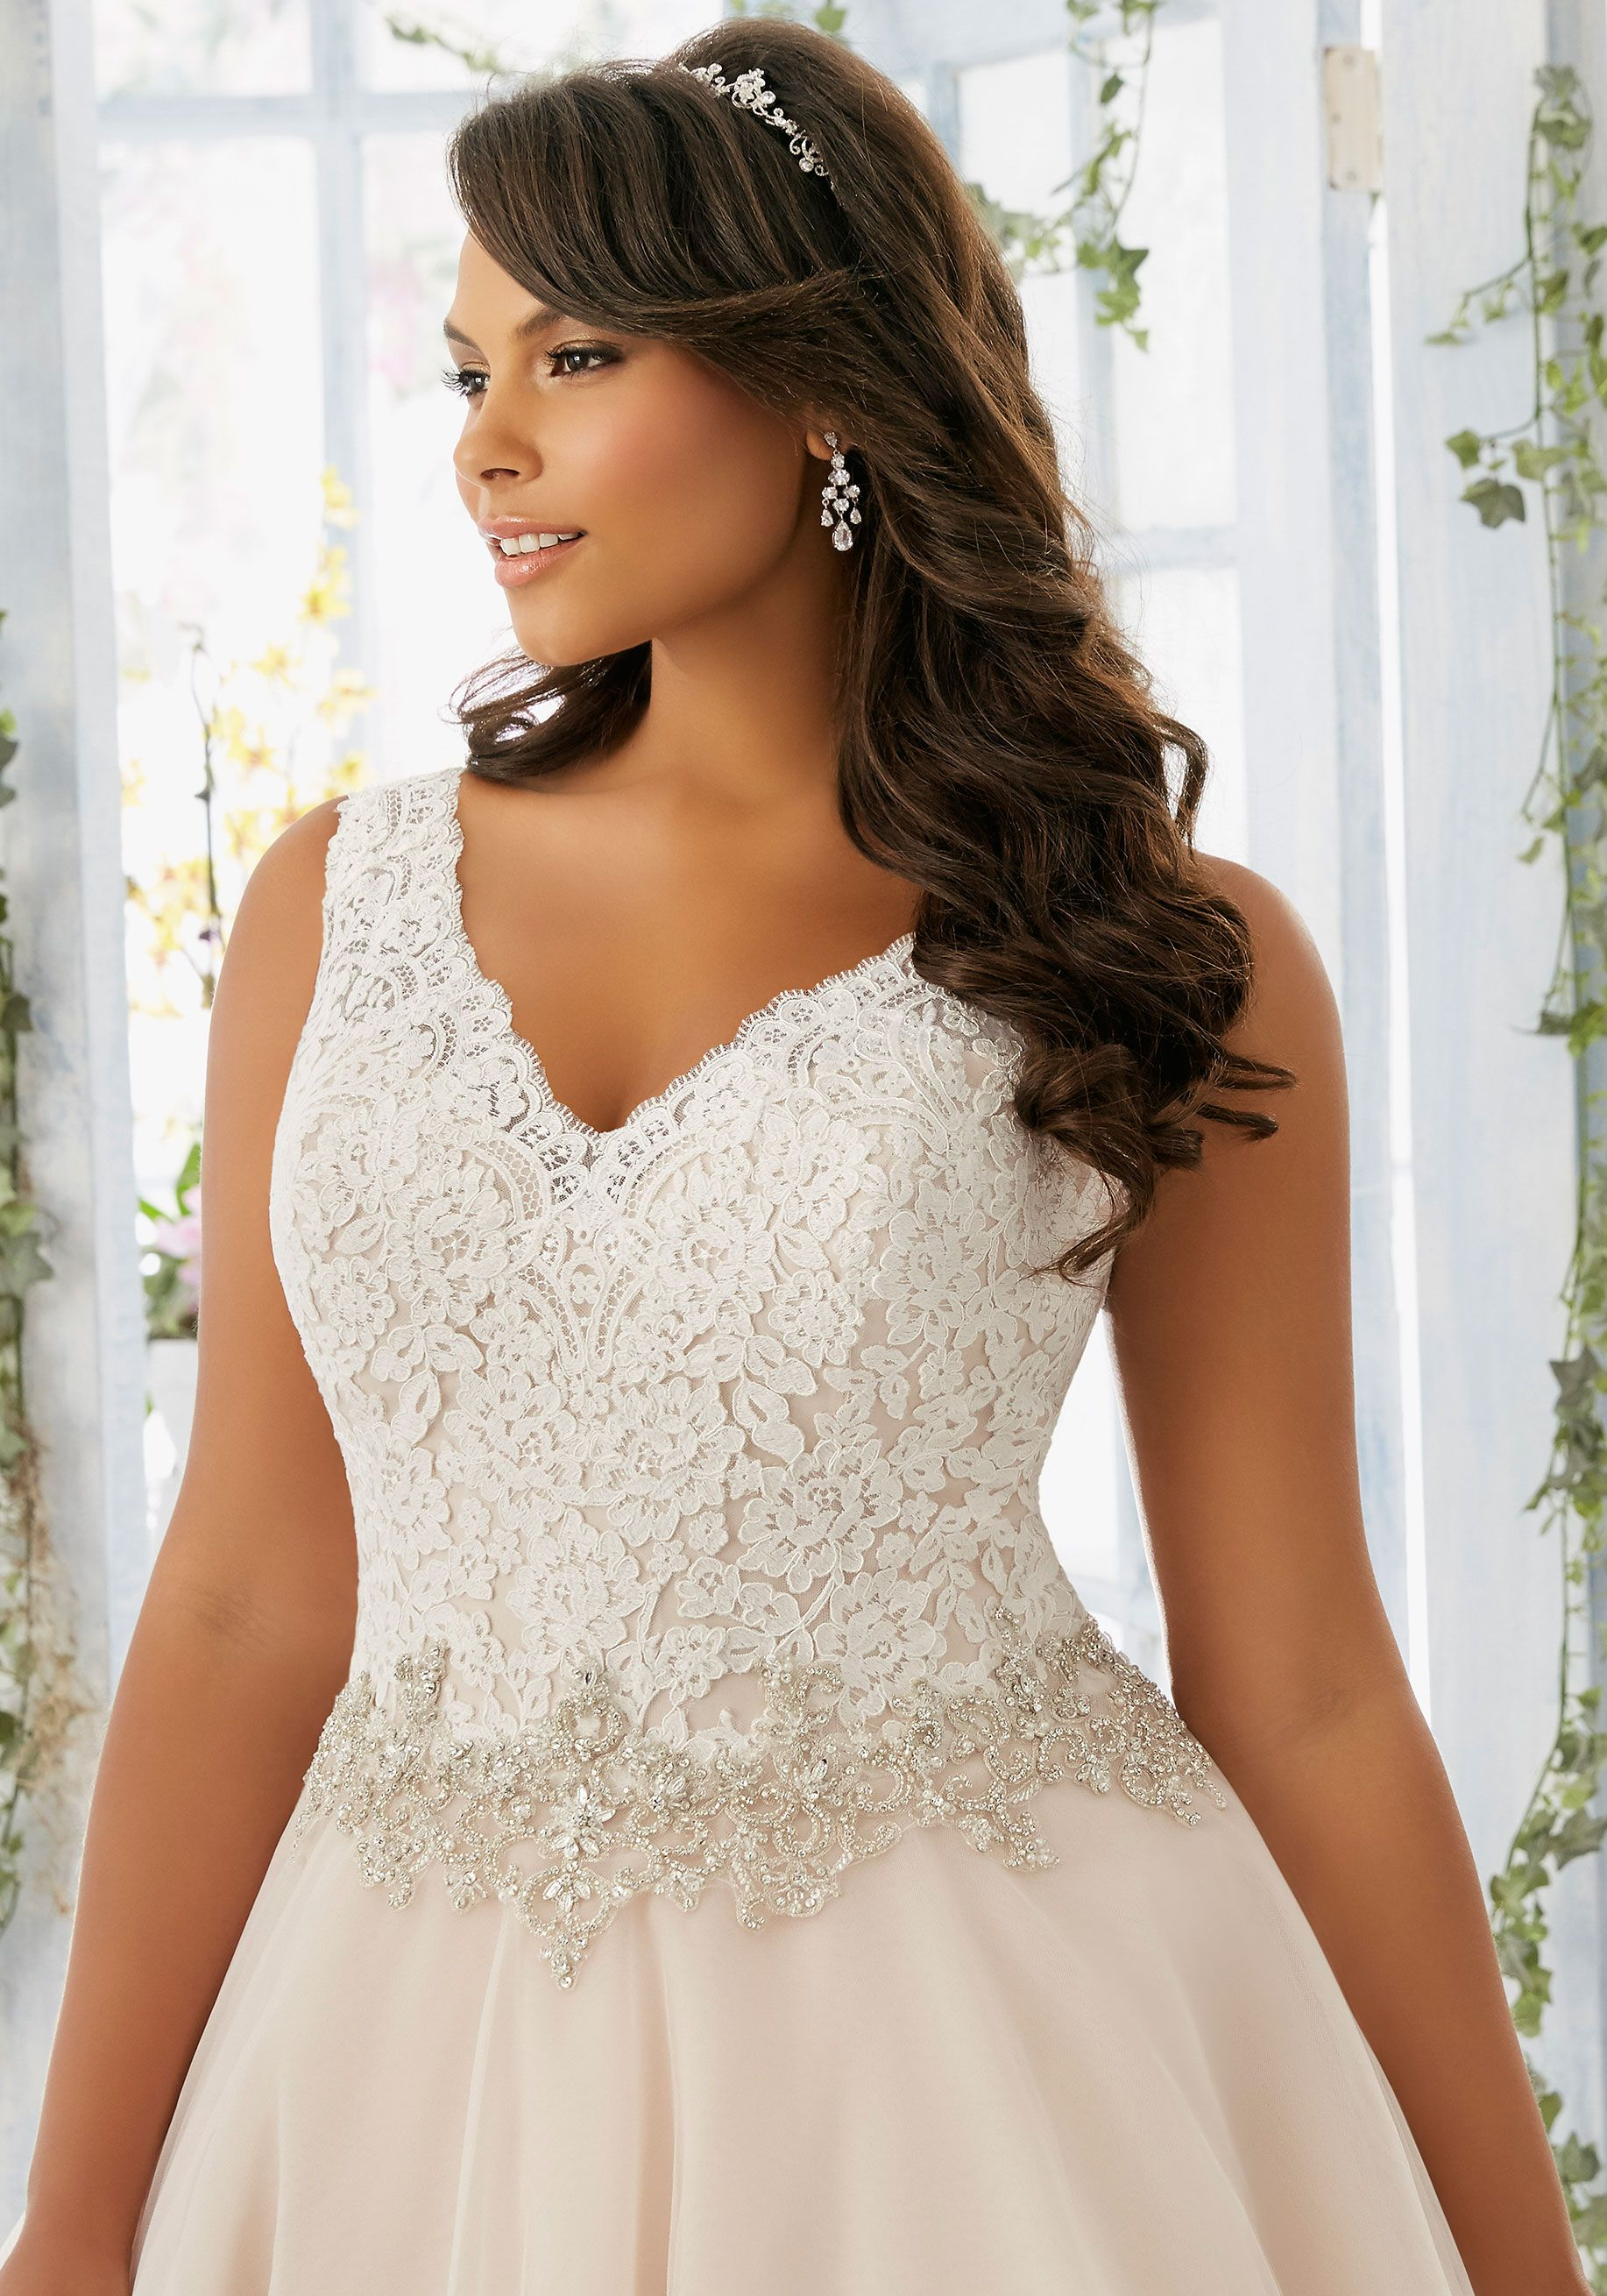 a35c90e08ee Mori Lee Bridal Embroidered Lace Bodice Edged with Beading onTulle Wedding  Dress